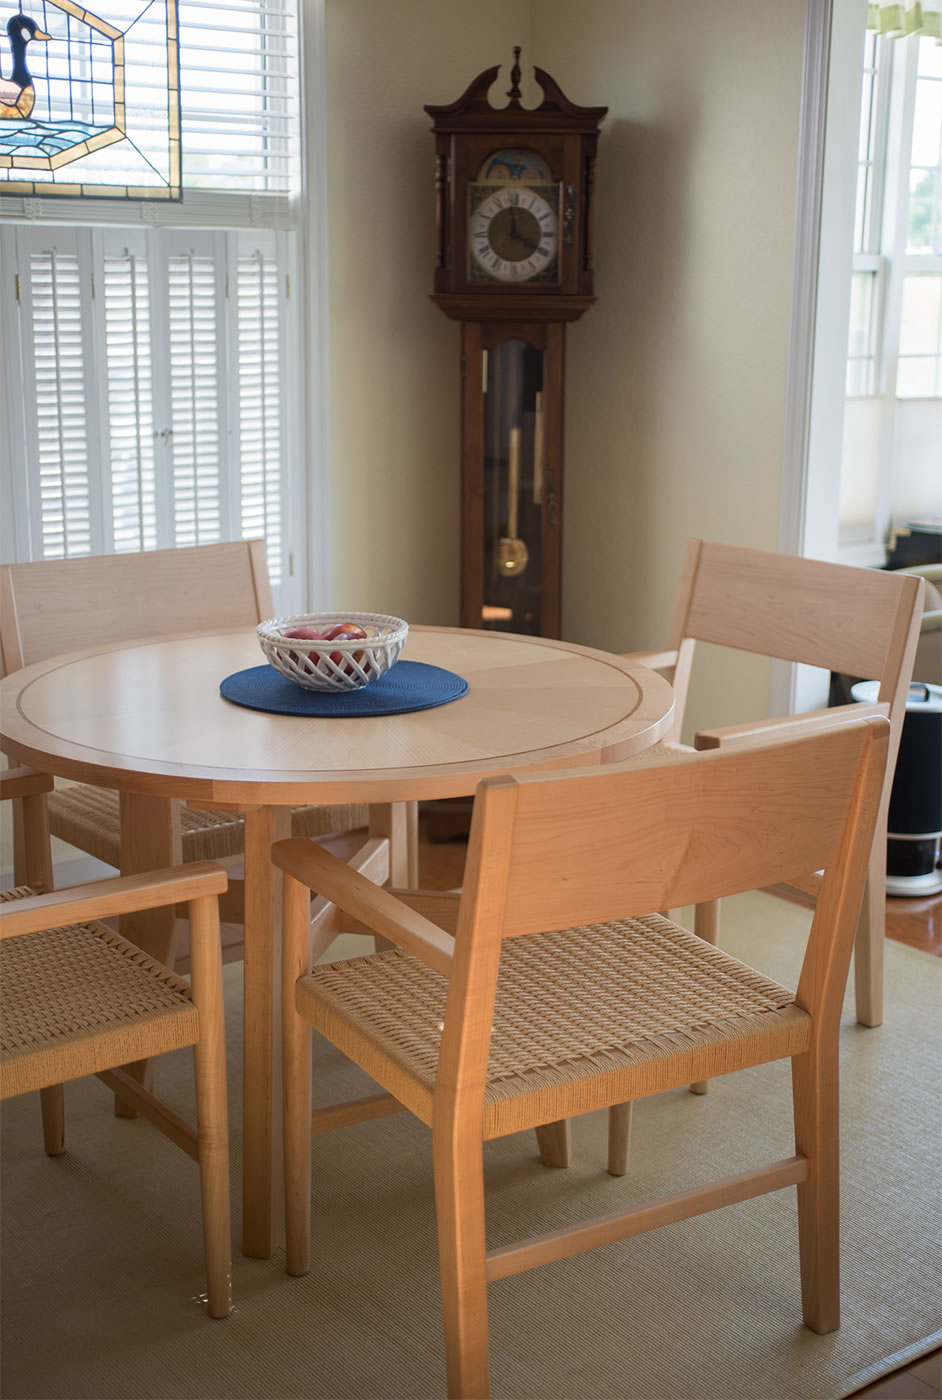 Bohnhoff-modern-kitchen-table-and-chairs-with-danish-corded-seat.jpg